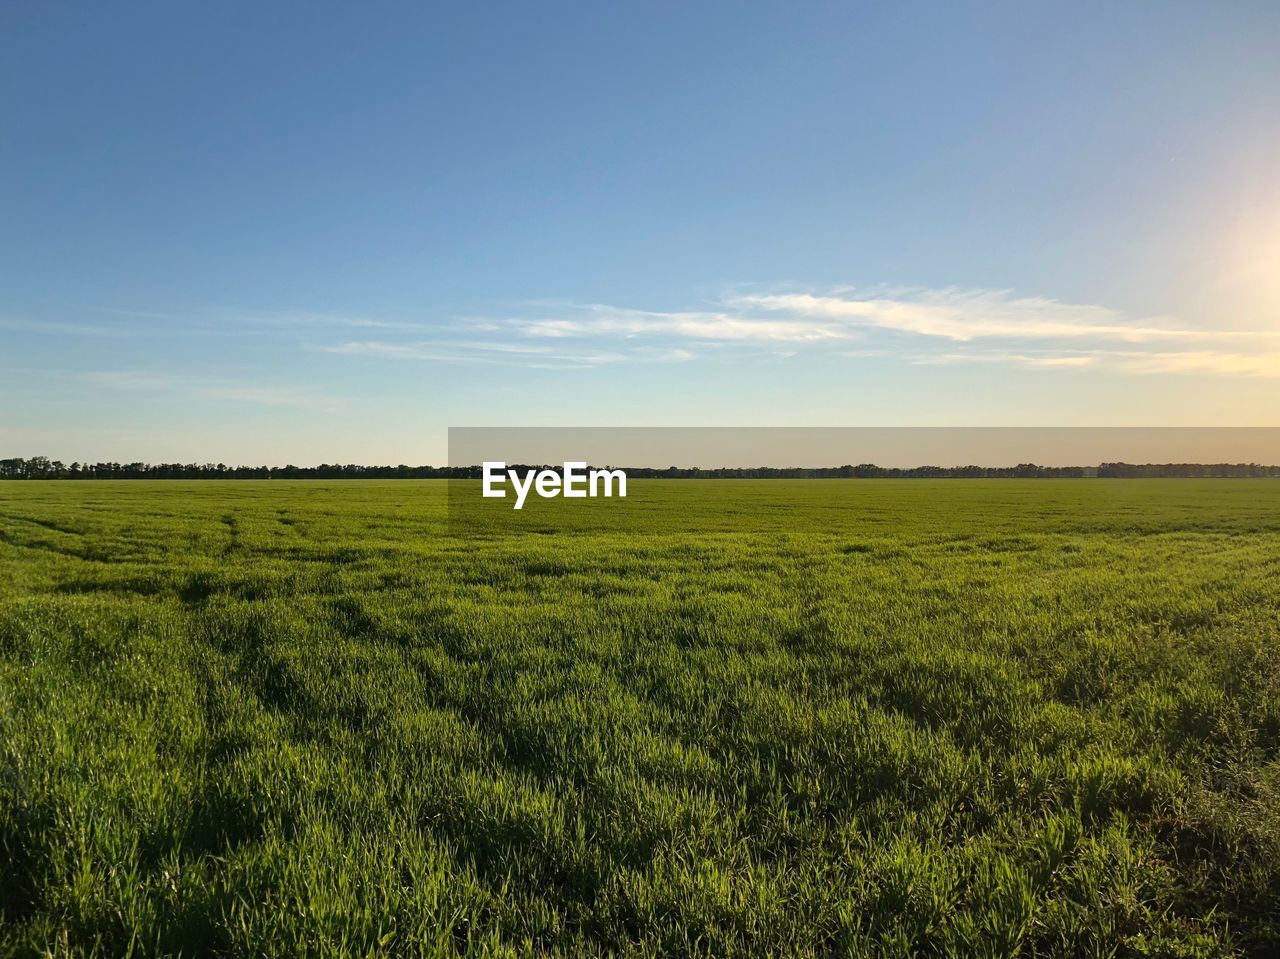 landscape, sky, environment, field, plant, scenics - nature, tranquility, tranquil scene, land, green color, beauty in nature, growth, grass, nature, rural scene, agriculture, no people, non-urban scene, cloud - sky, day, outdoors